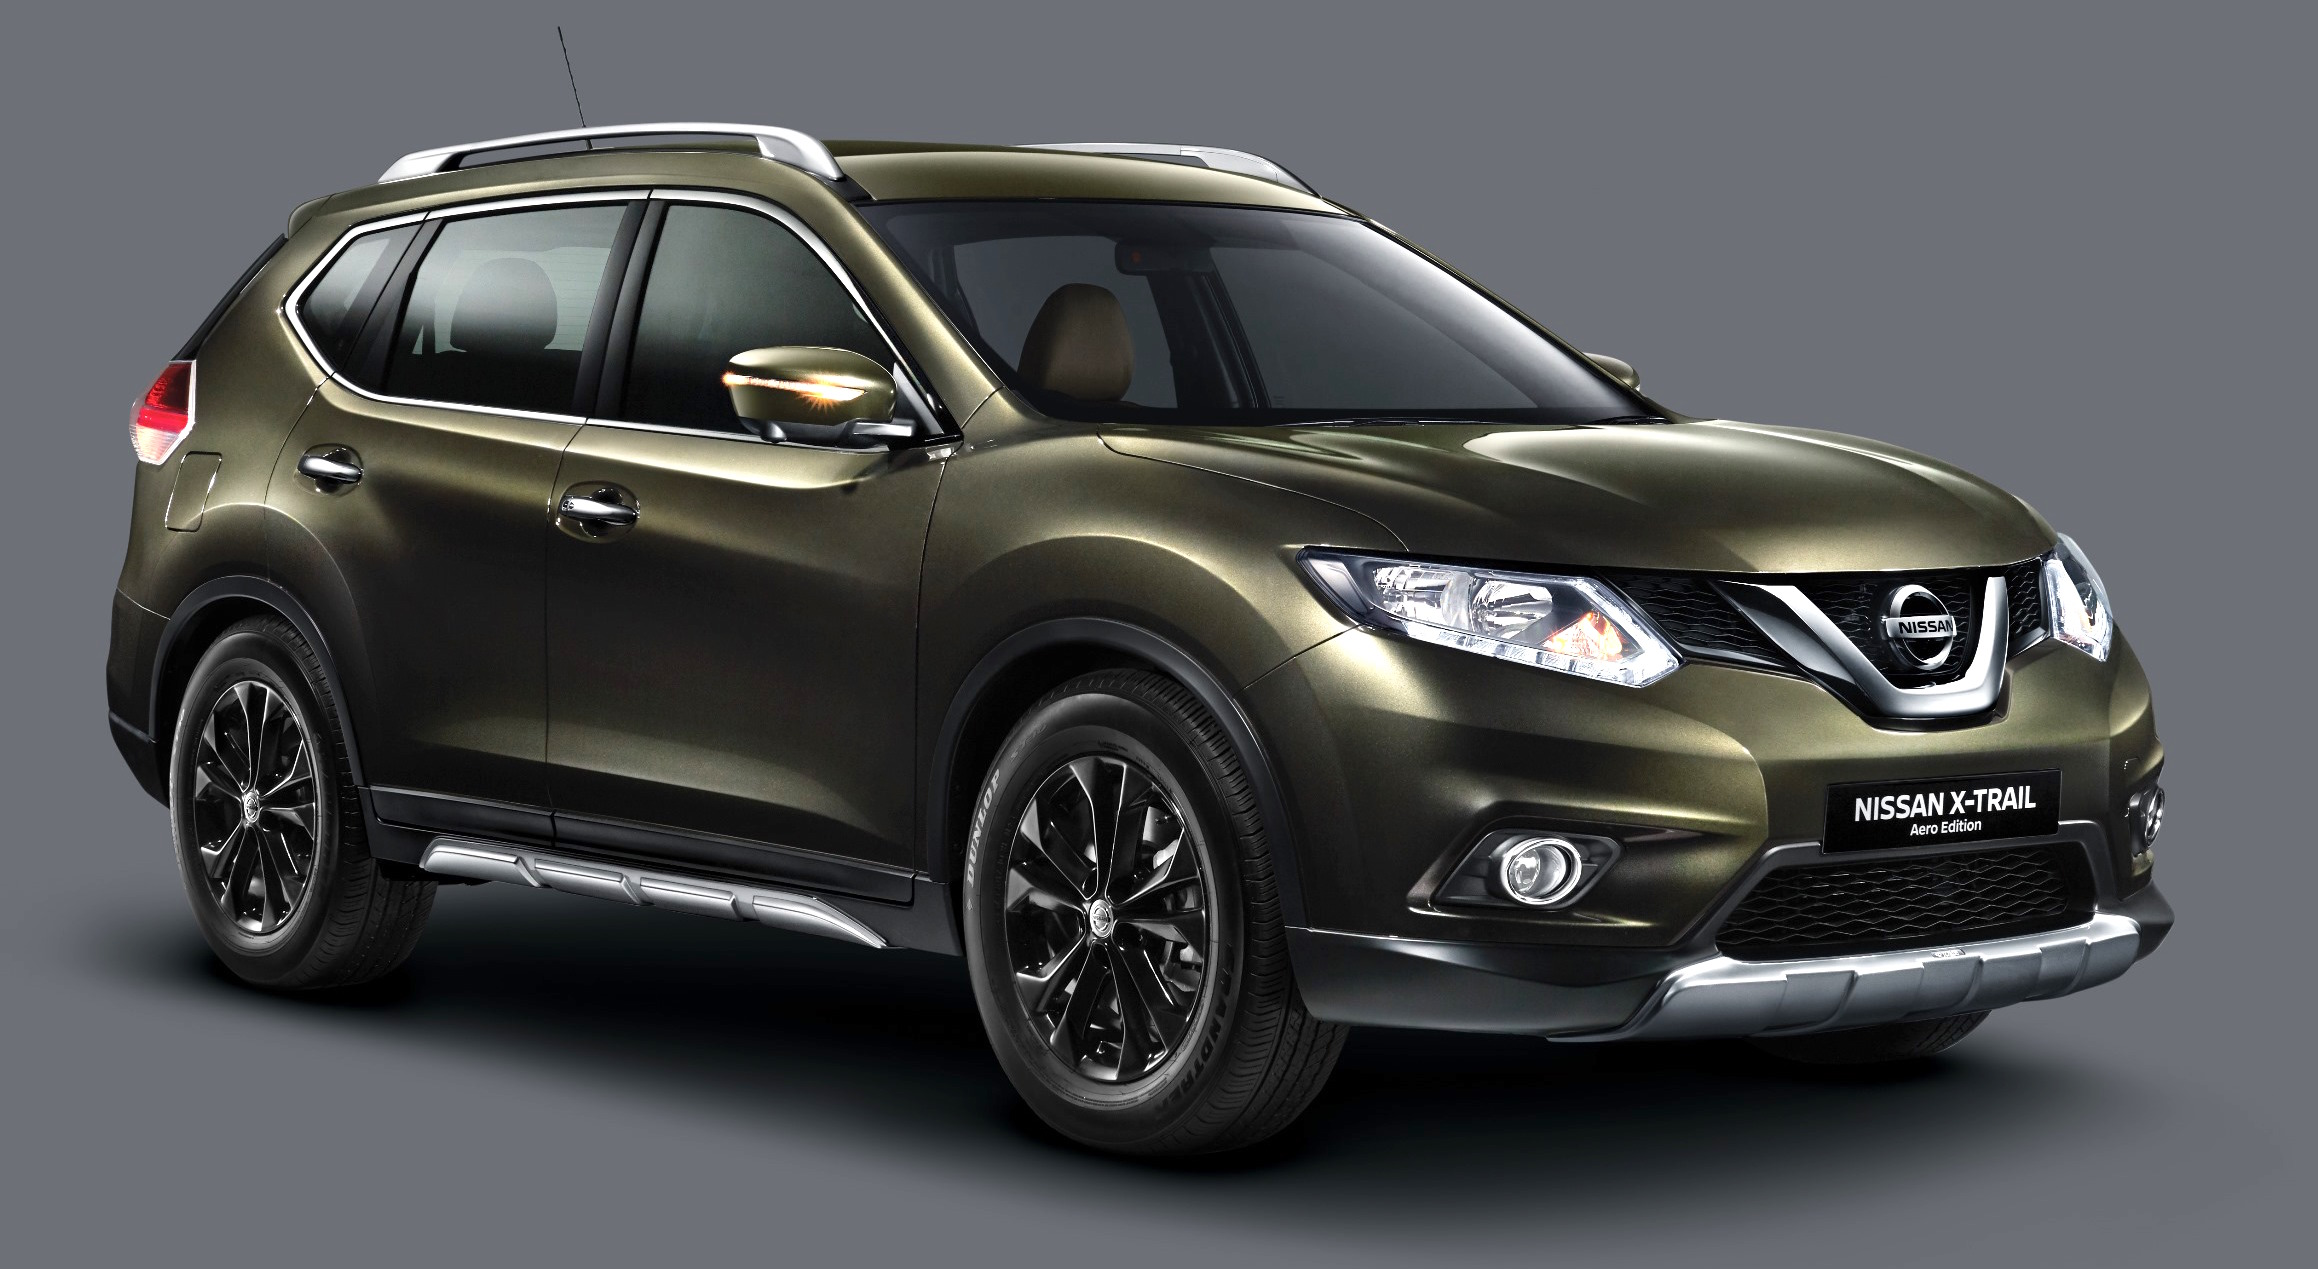 nissan x trail aero edition introduced available in 2 0l 2wd and 2 5l 4wd versions rm141k to. Black Bedroom Furniture Sets. Home Design Ideas